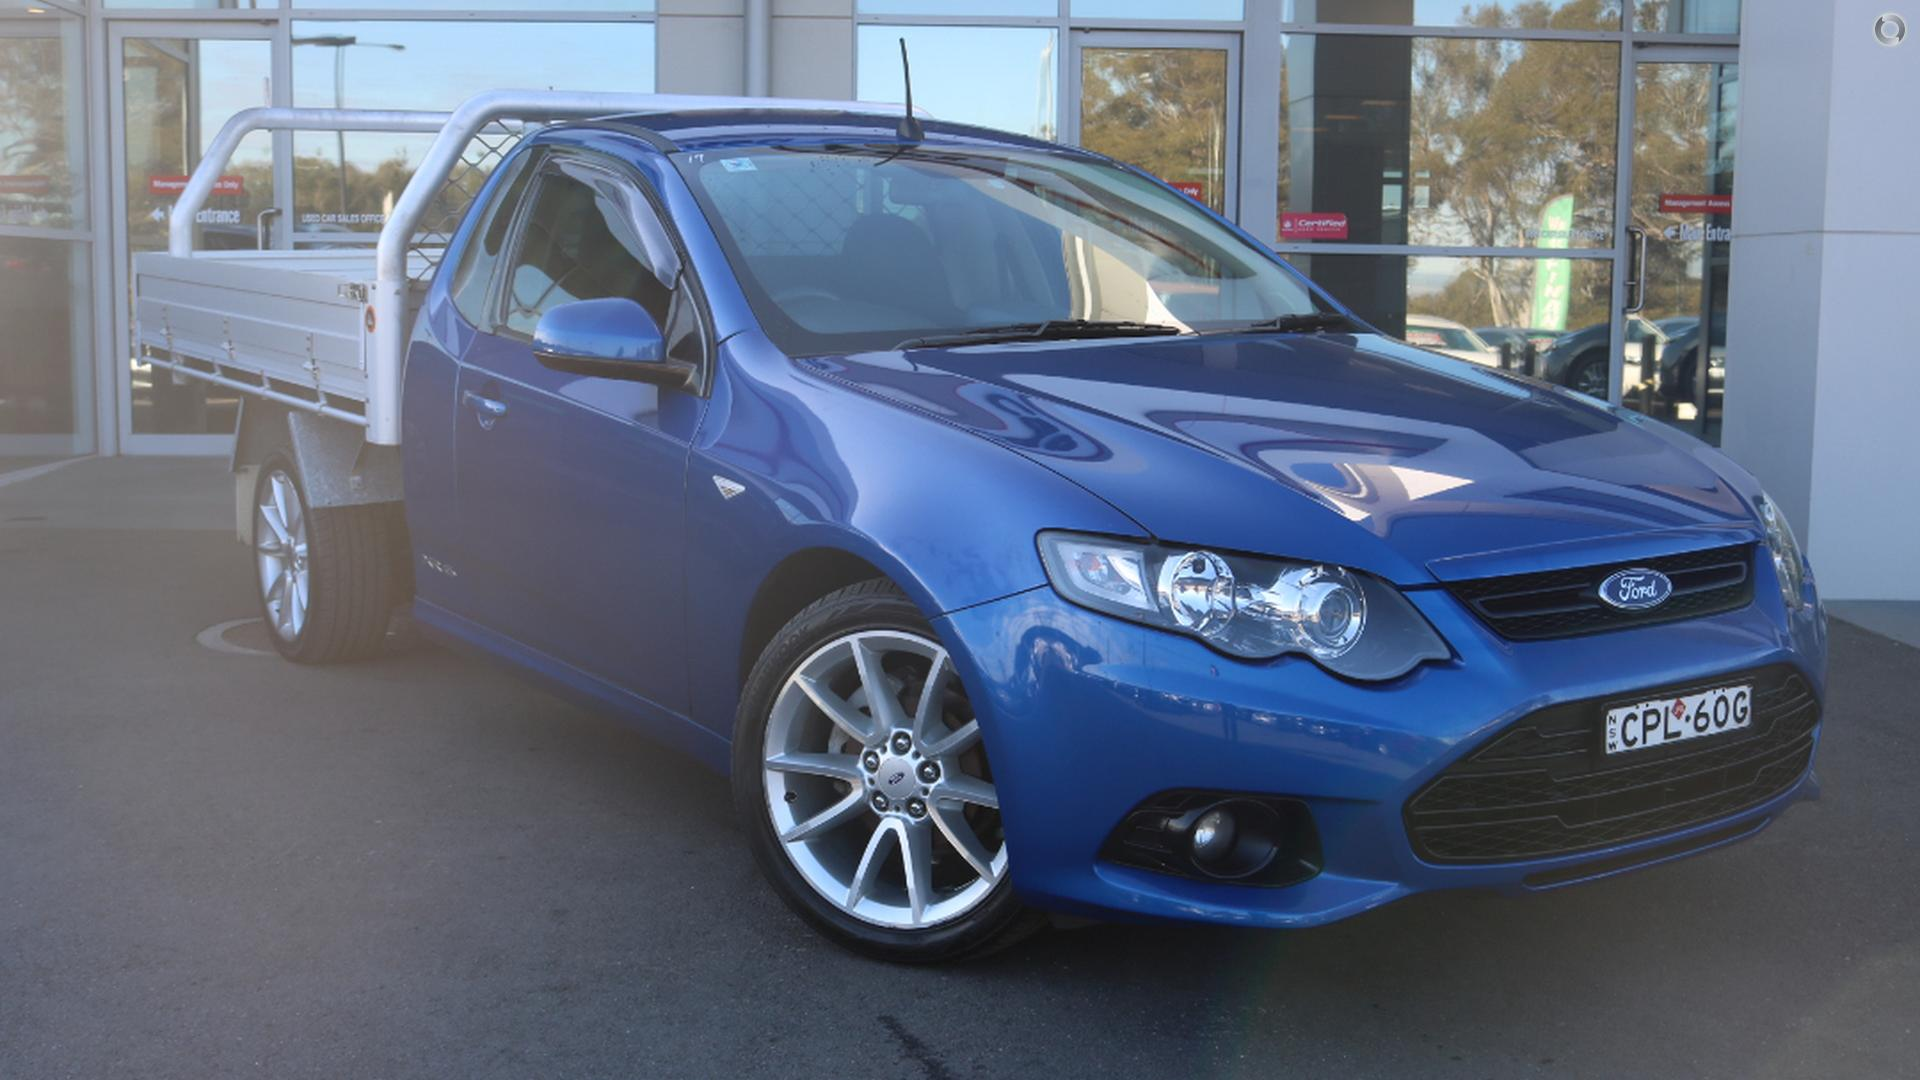 2013 Ford Falcon Ute Xr6 Ecolpi